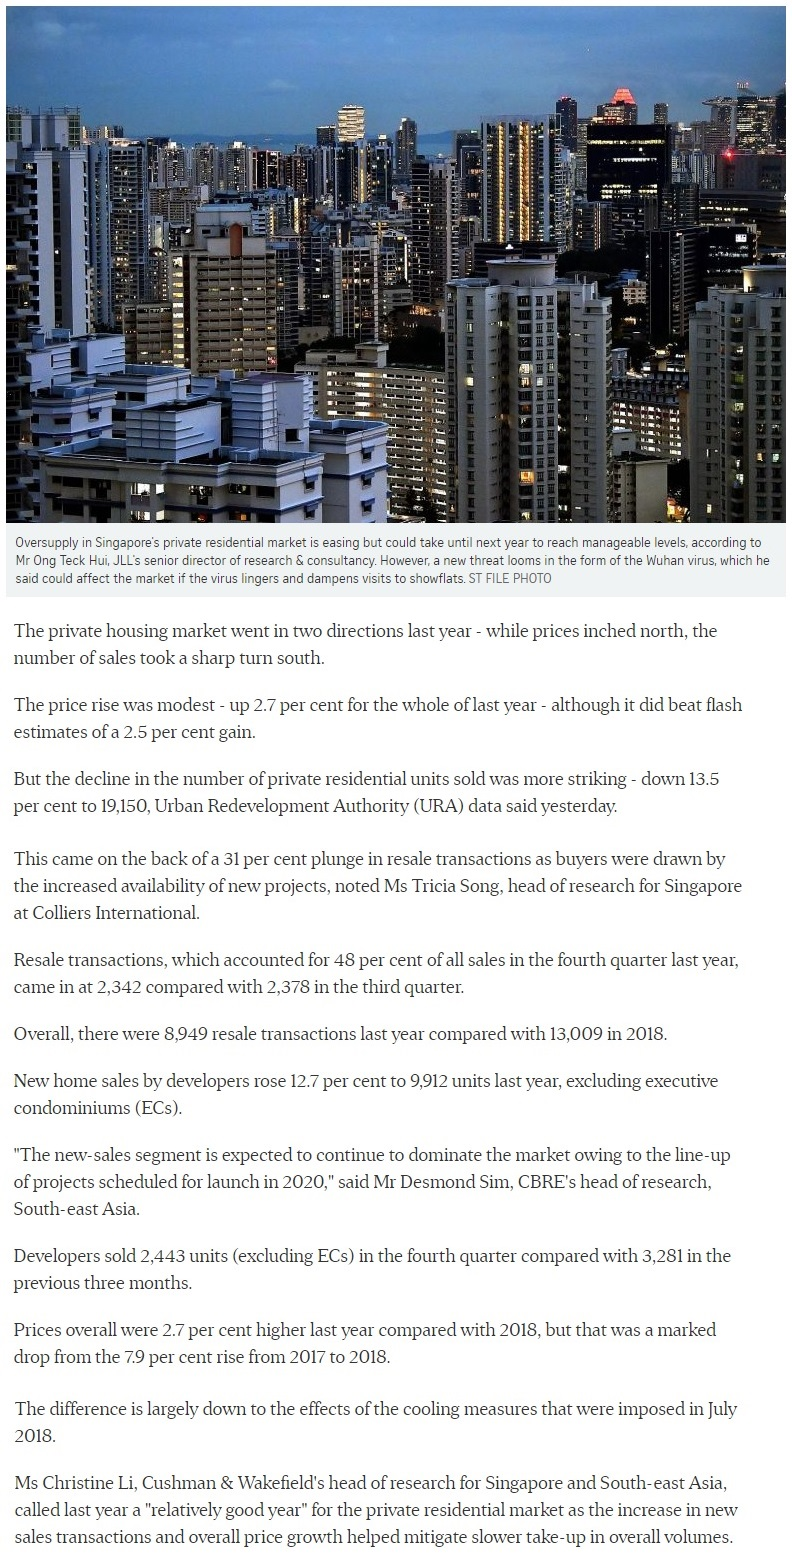 Myra - Singapore private home prices inch up 2.7% for 2019 Part 1